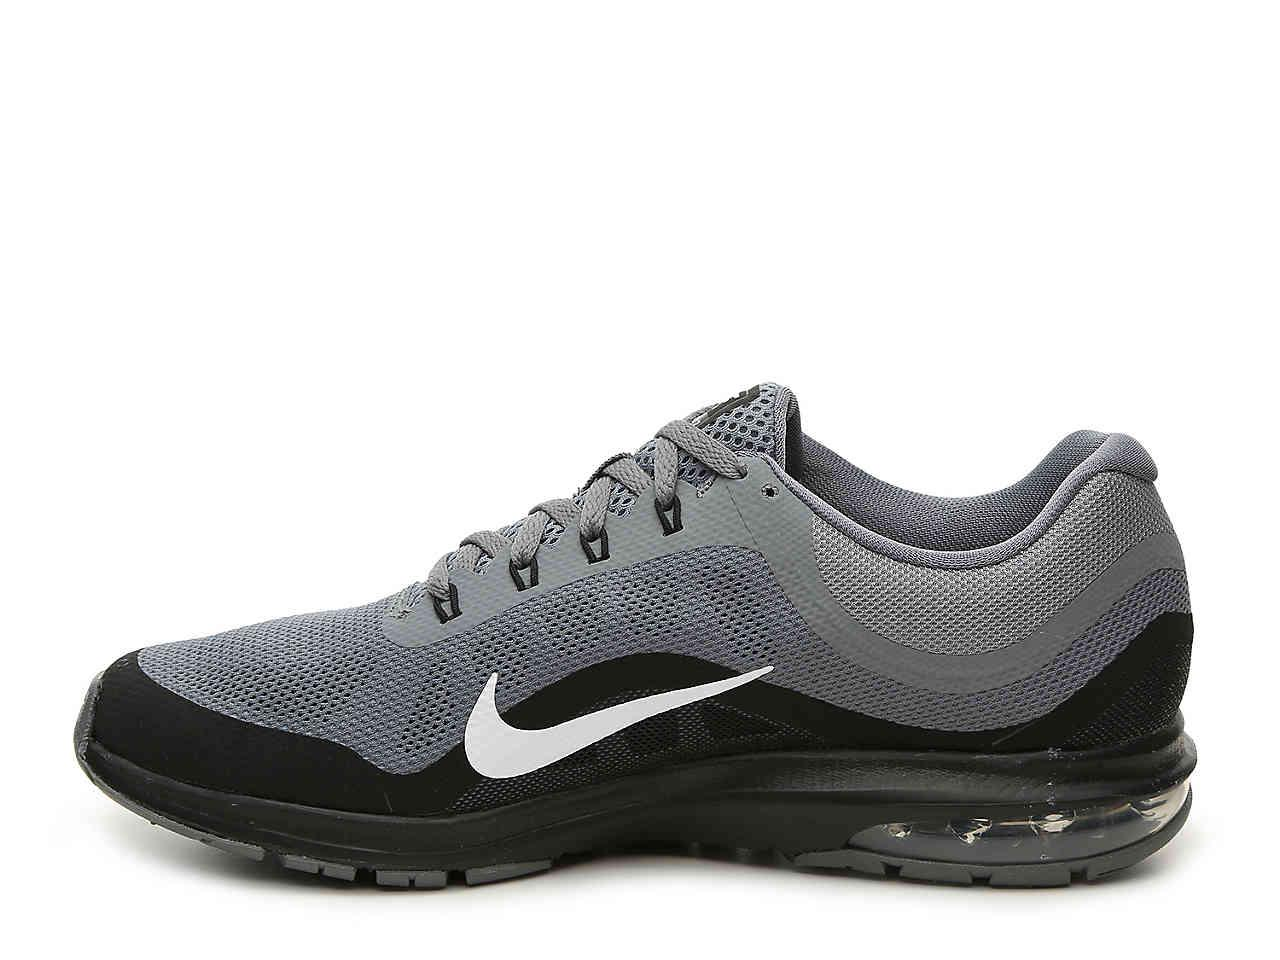 best website d7611 a39bd Lyst - Nike Air Max Dynasty 2 Performance Running Shoe in Black for Men